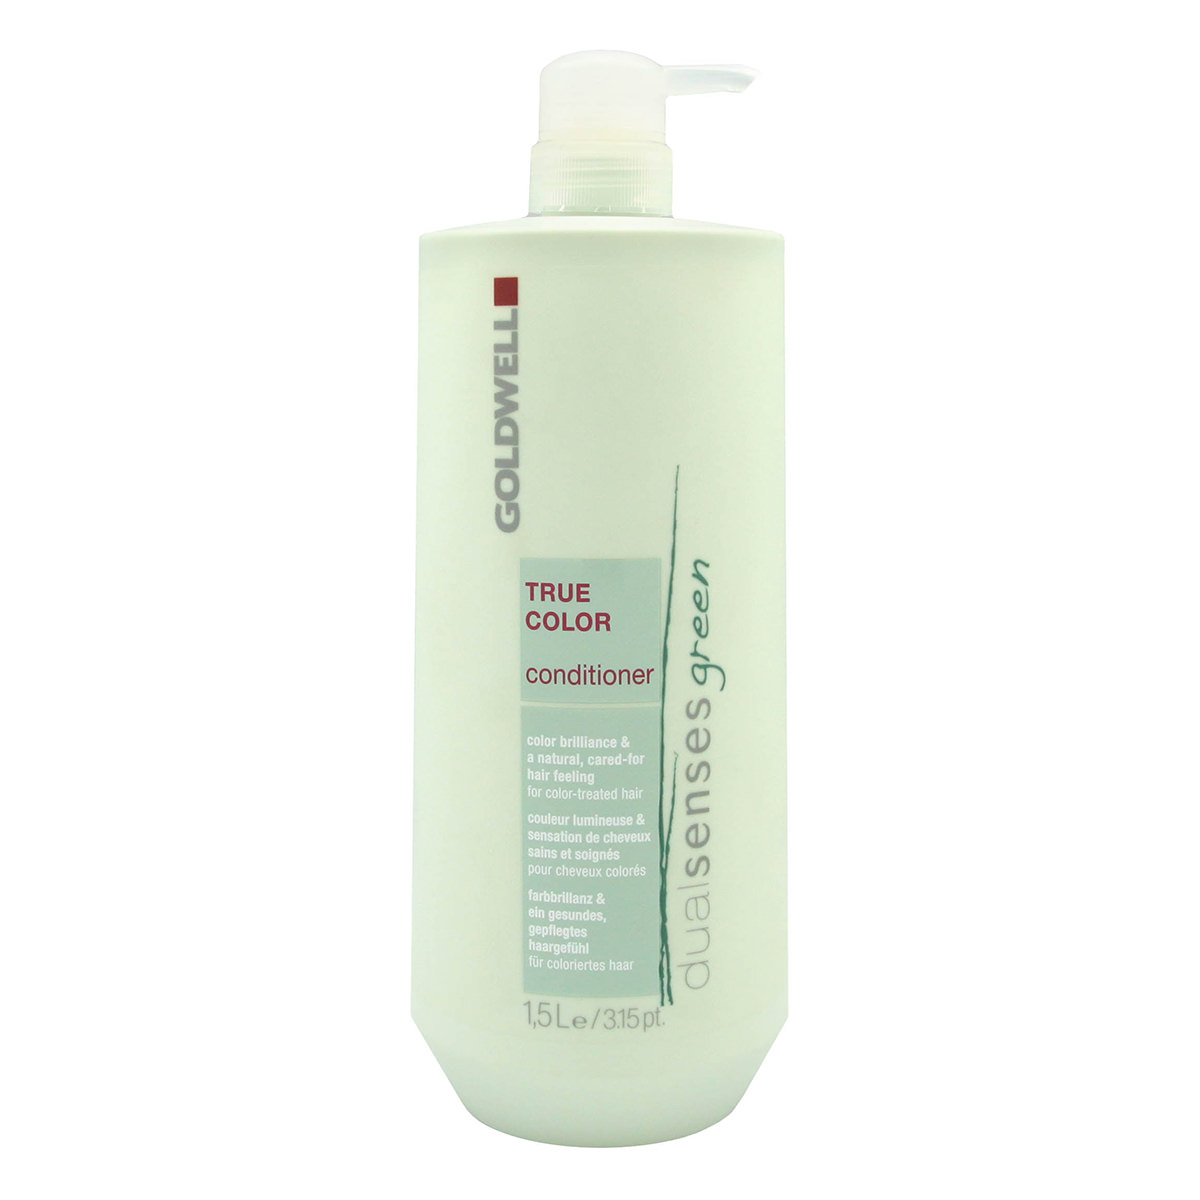 Goldwell---Dualsenses-Green-True-Color-Conditioner-(1500-ml)-sfw (1)